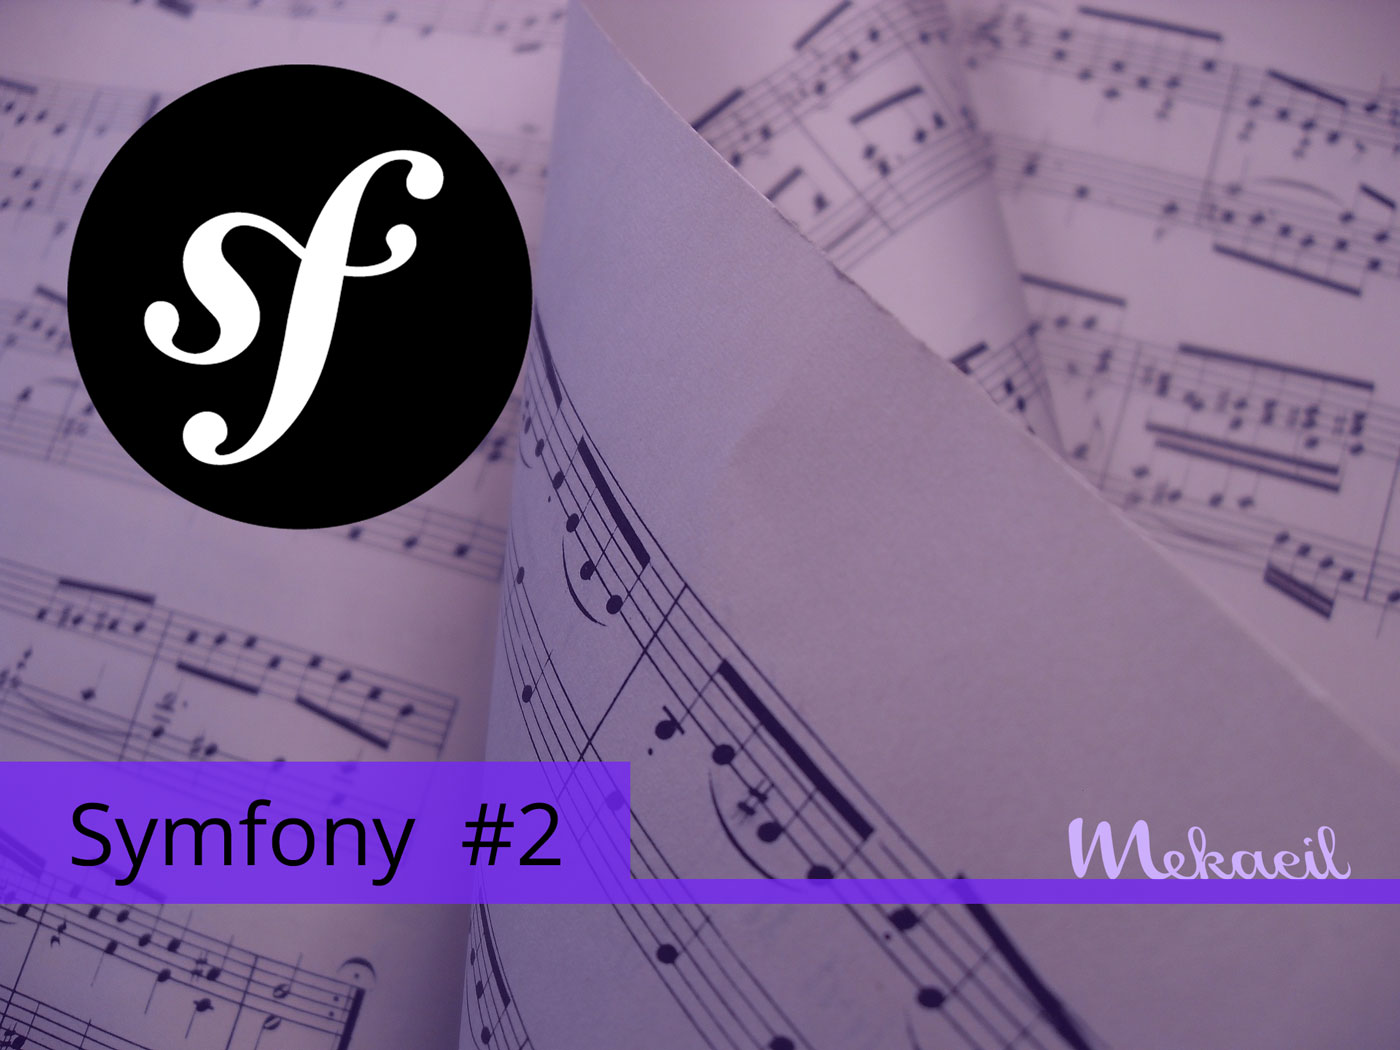 about Symfony structure